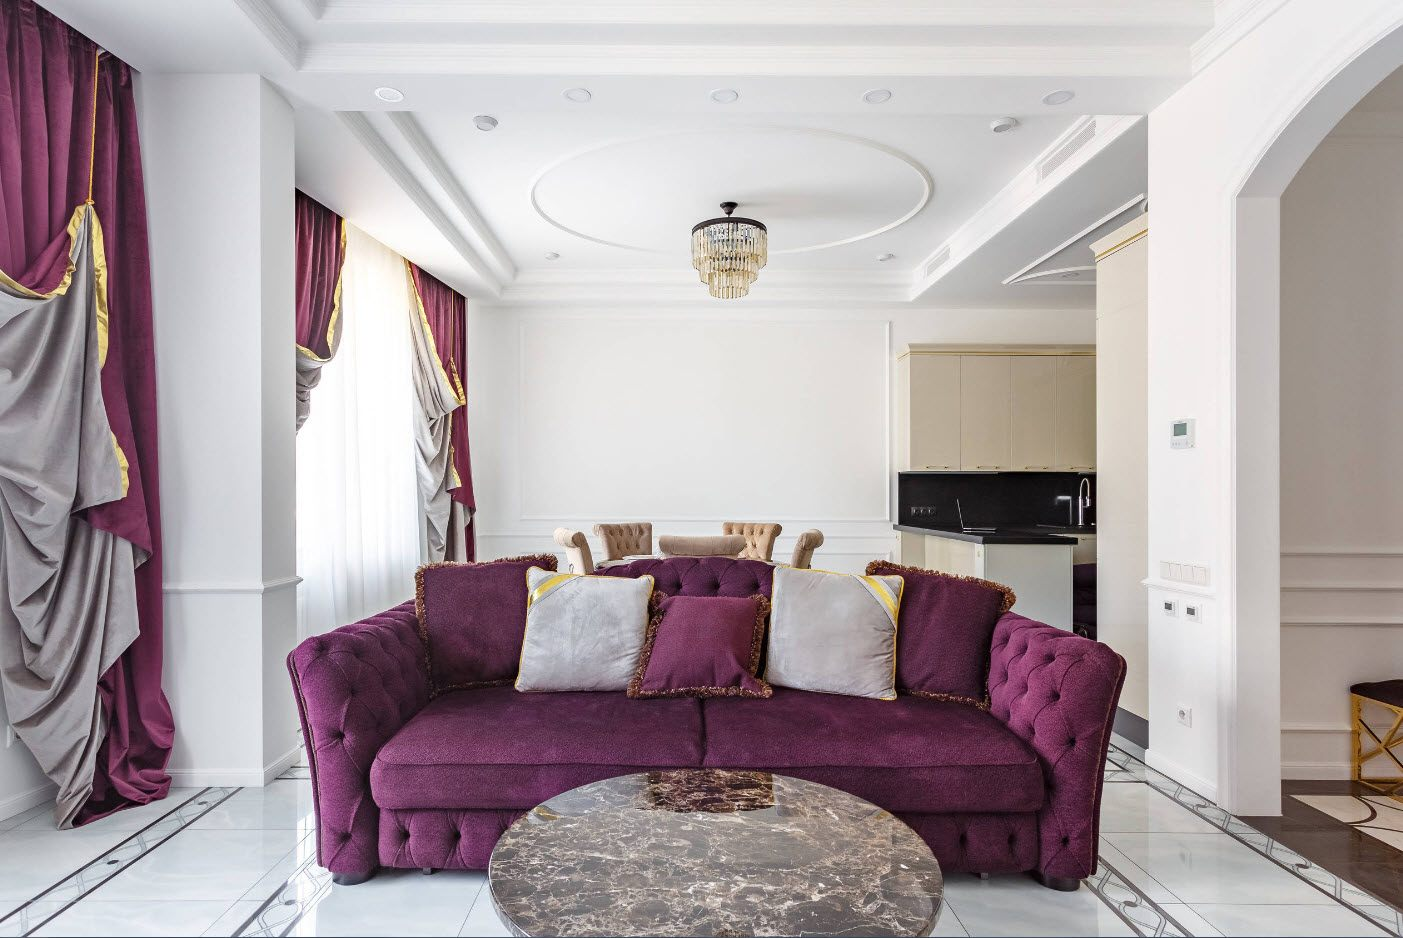 White Living Room: Different Style Interiors with Photos. Velor uphsoltered chic furniture for grandeur designed room